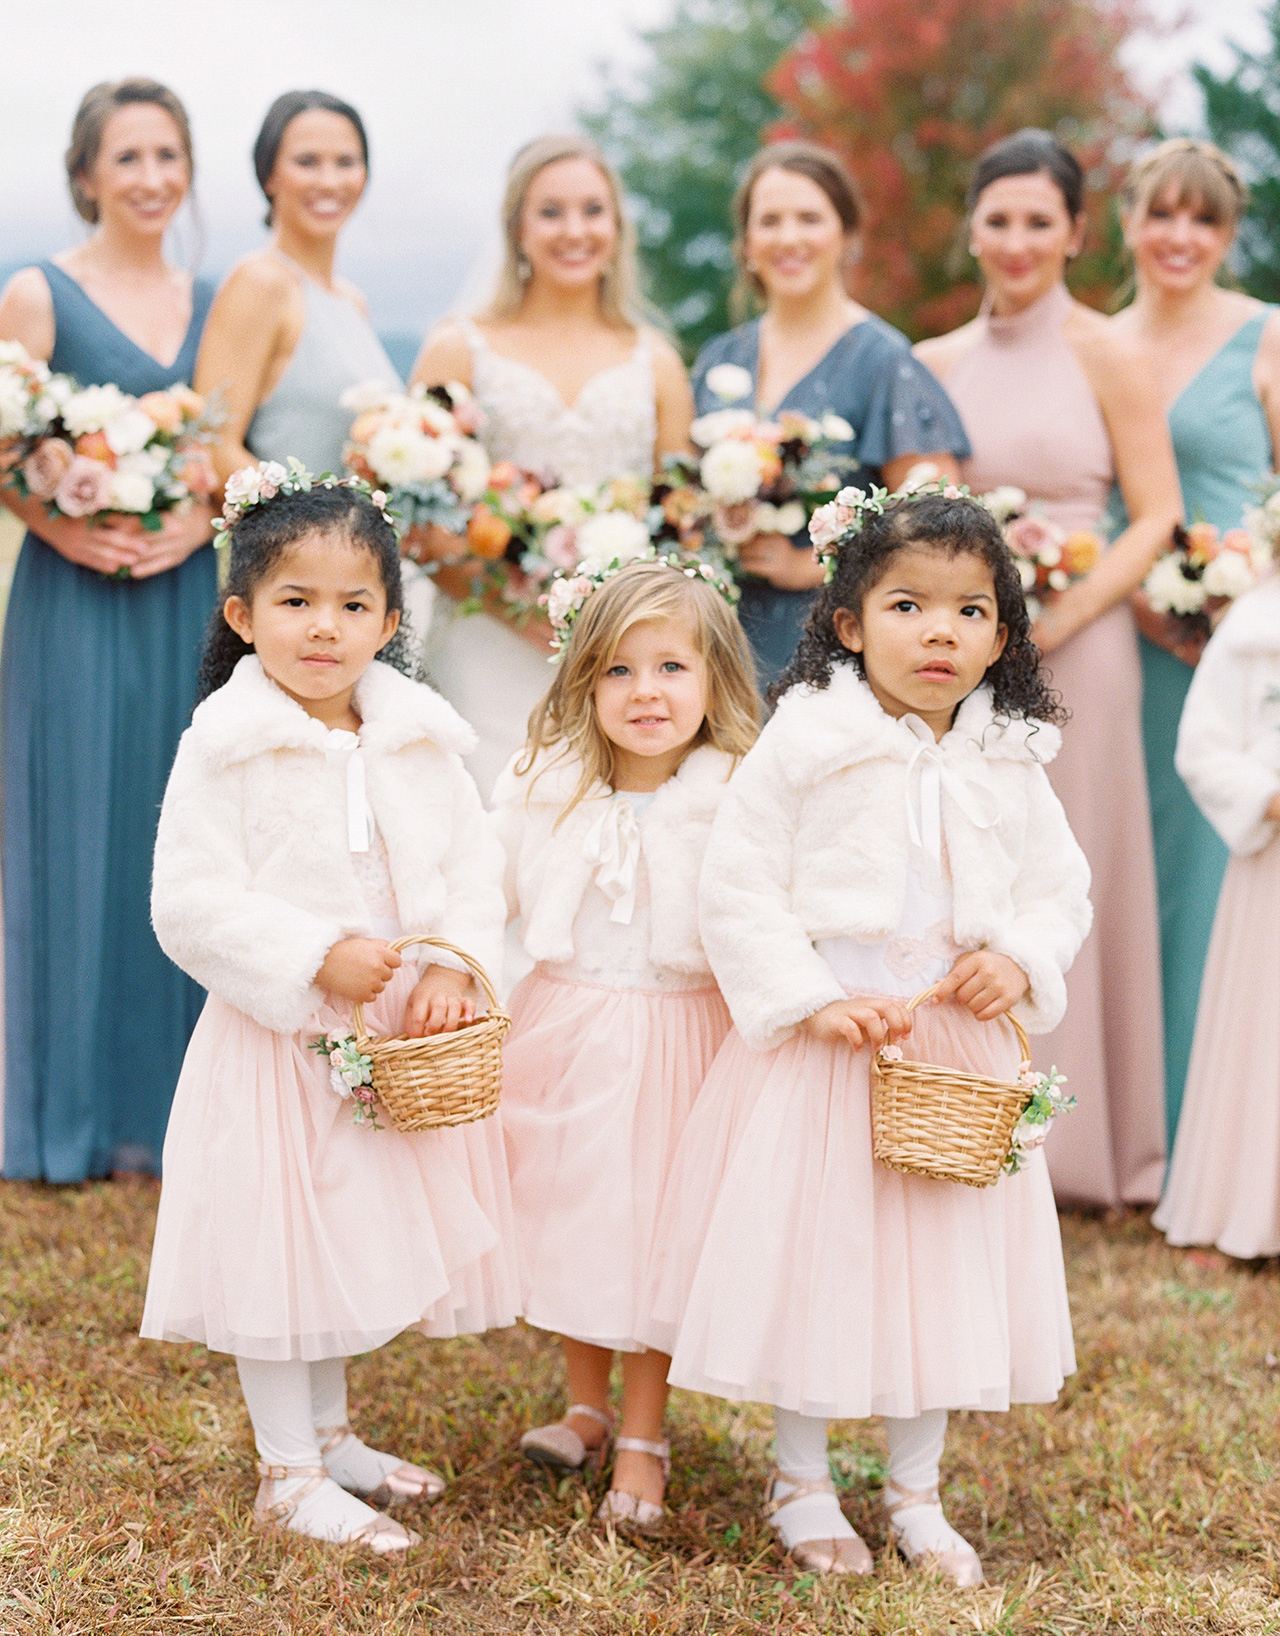 three young girls flower bearers pink dresses